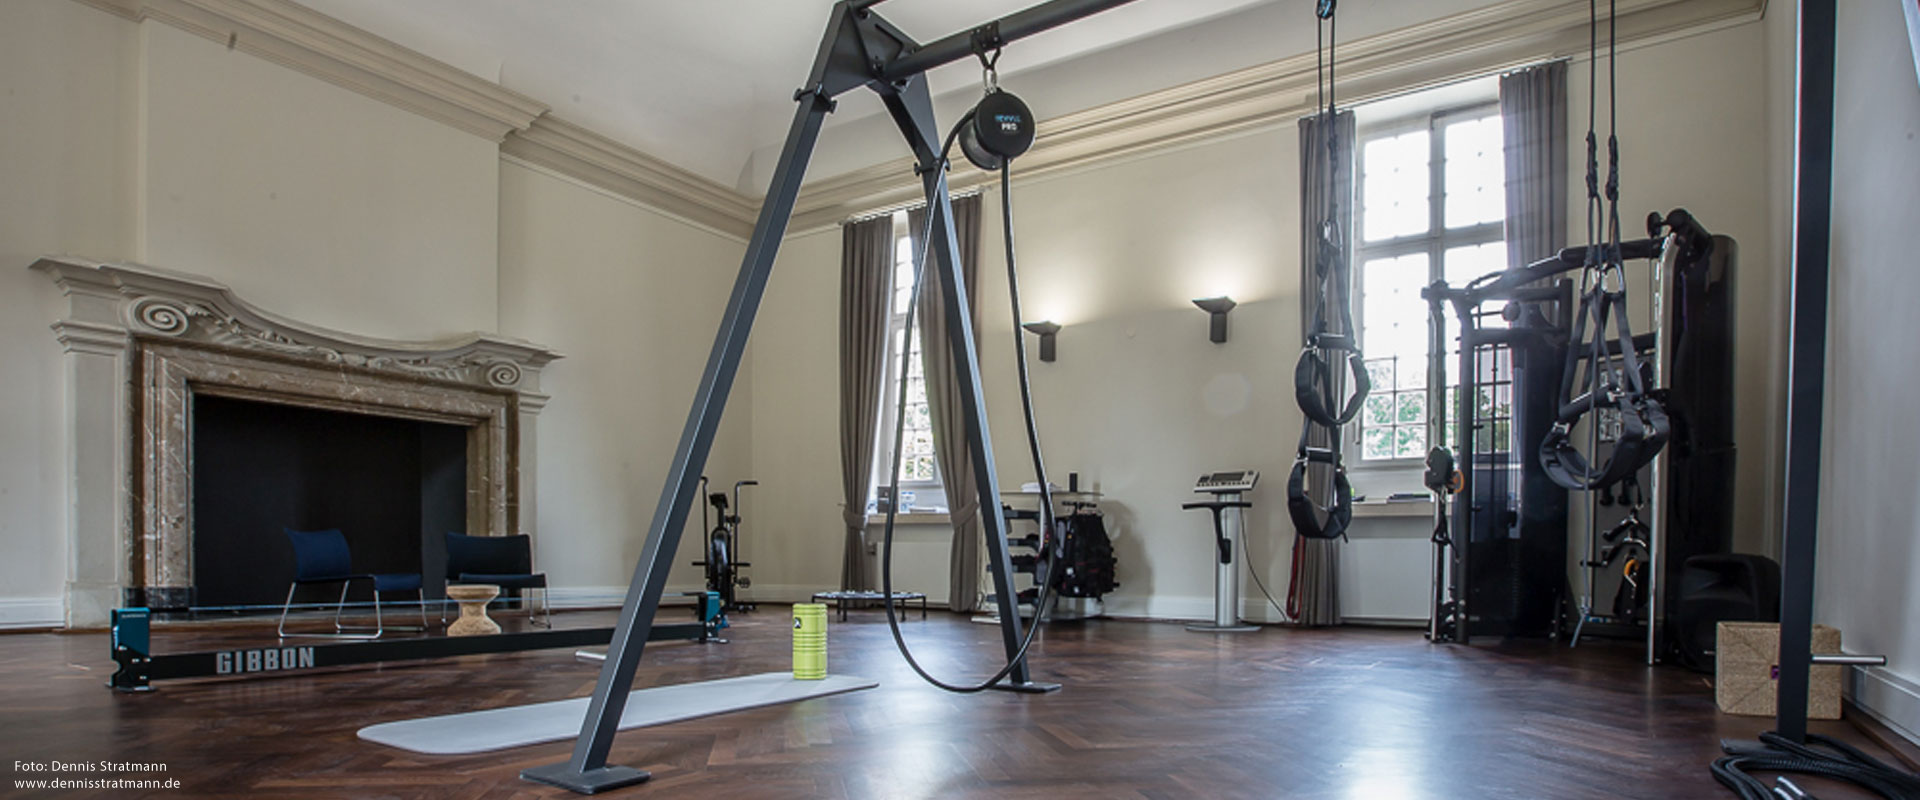 Personal Training Studio im Schloss Benrath